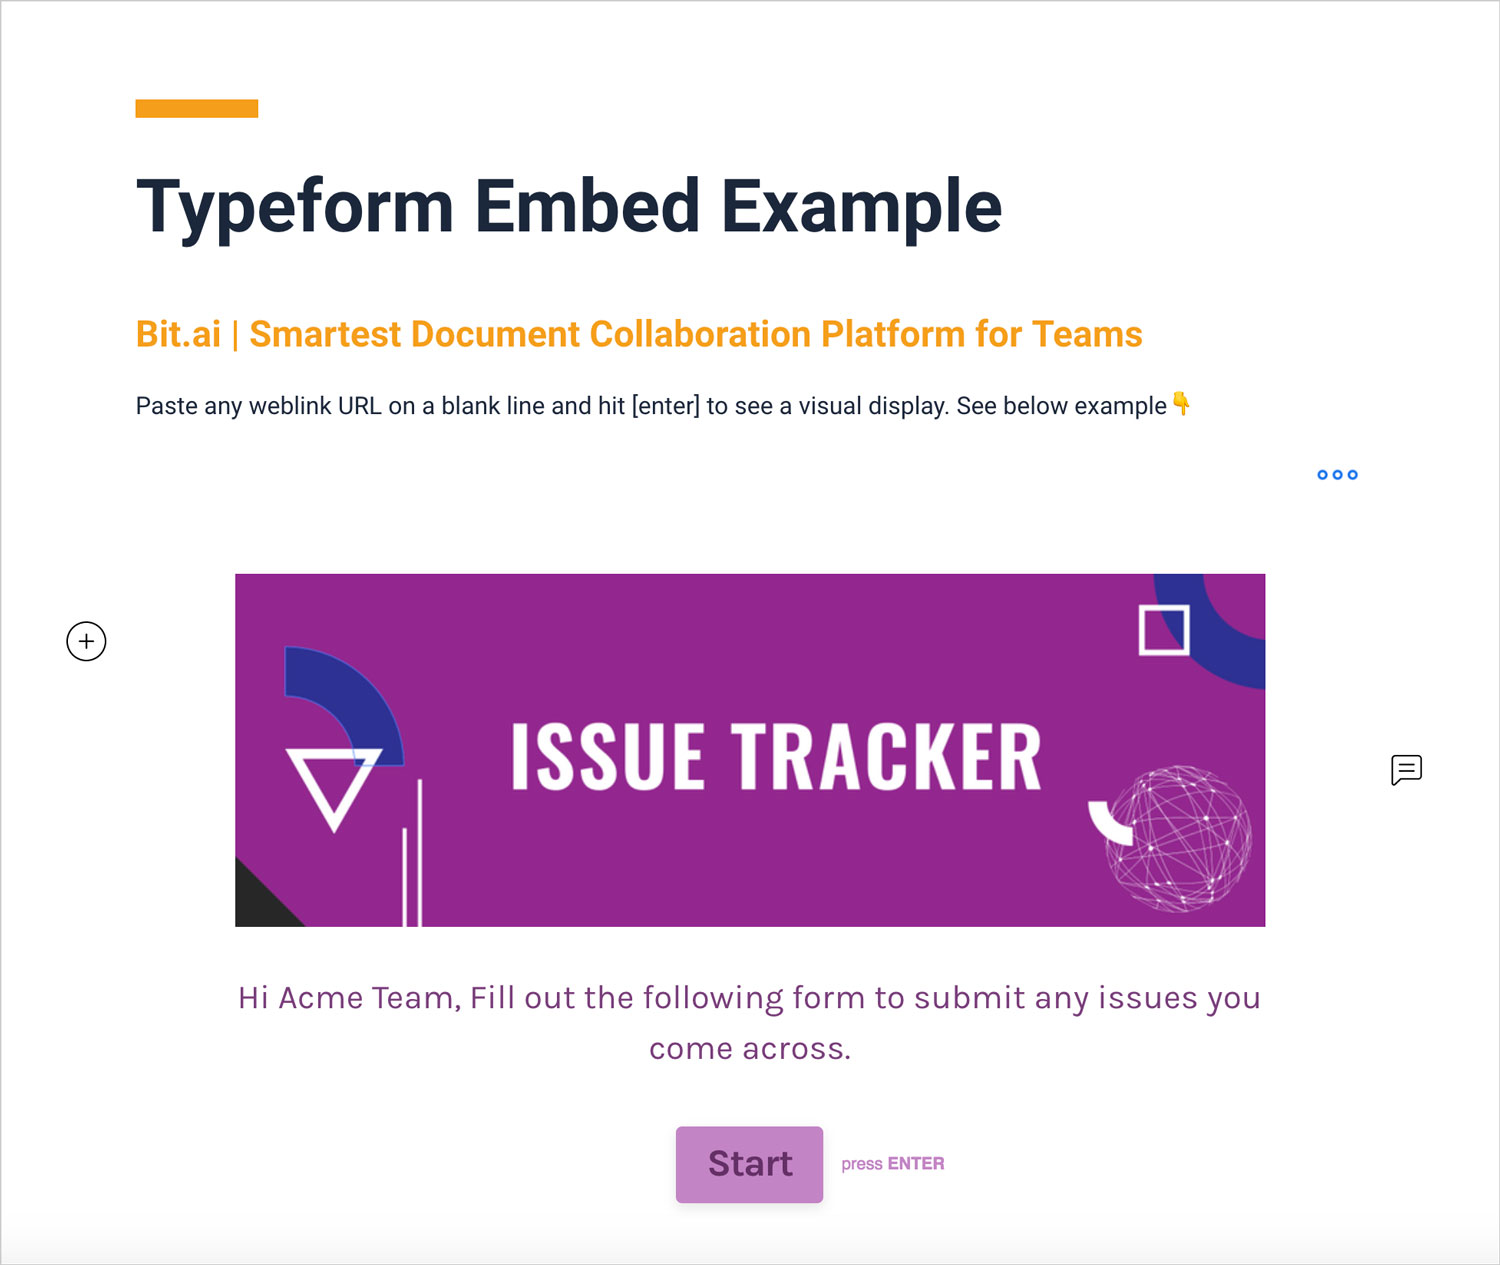 Preview of embedded typeform in a bit document